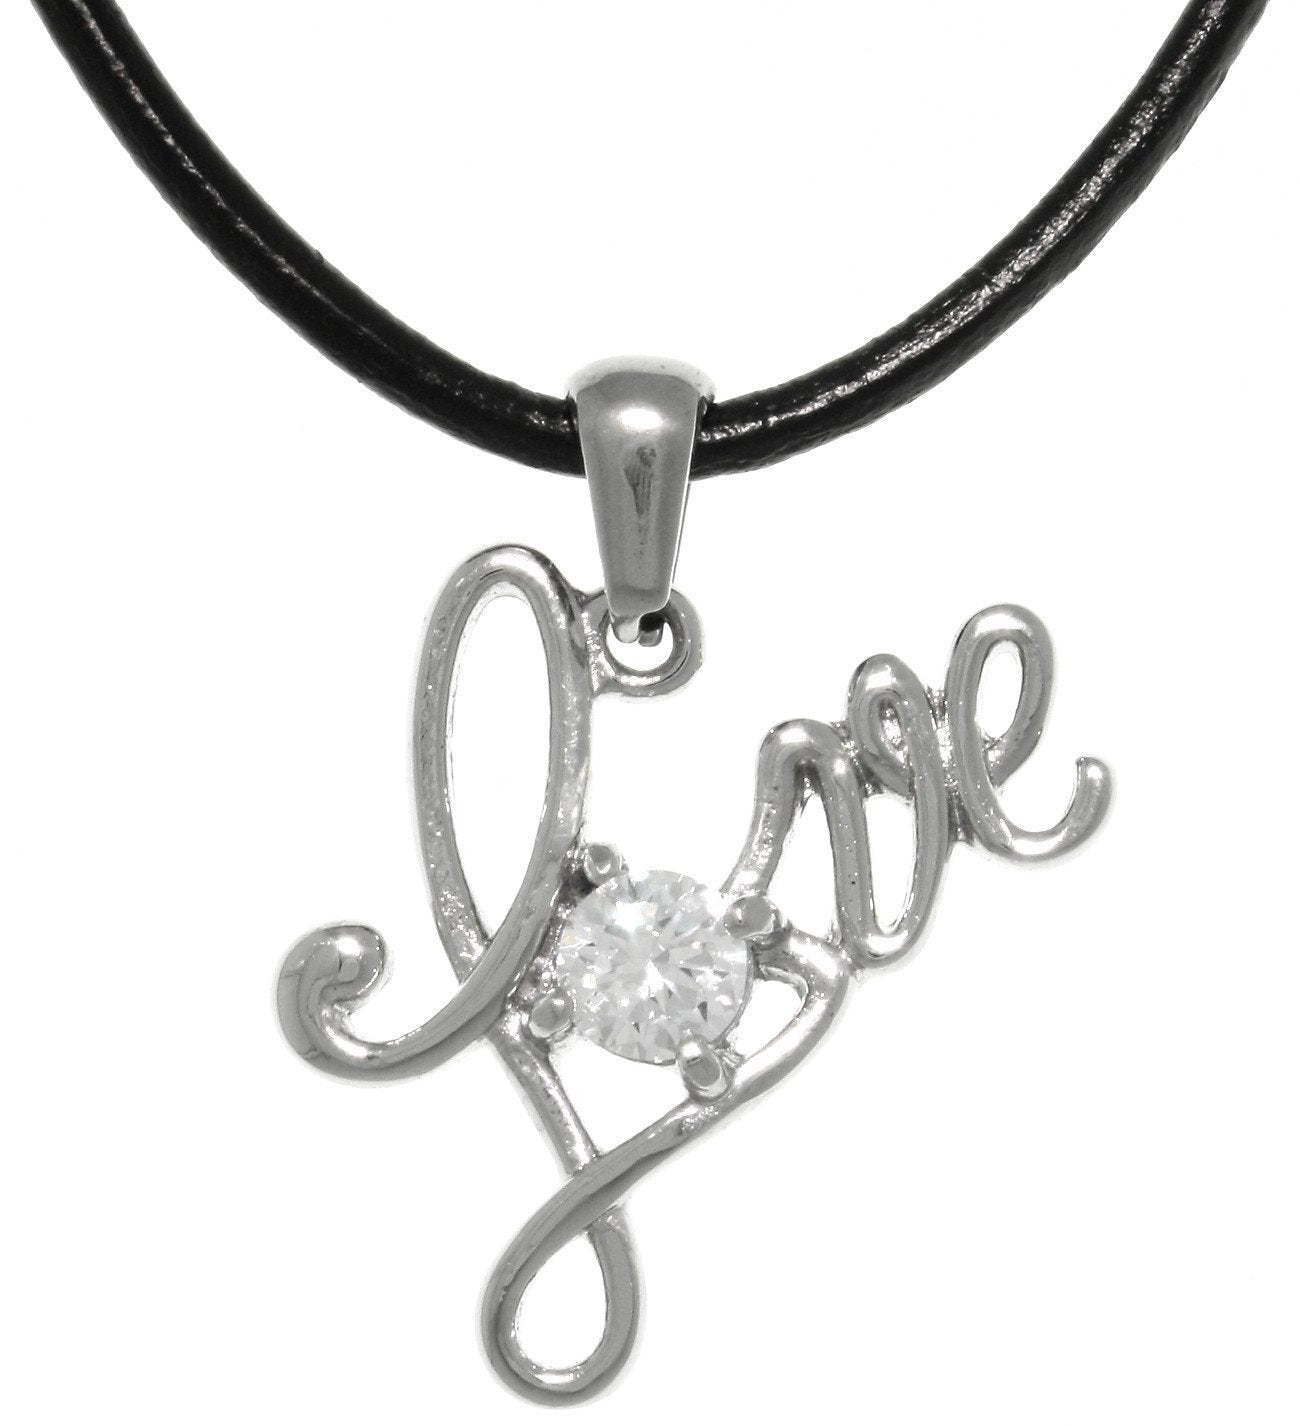 Jewelry Trends Stainless Steel Love Word Sentiment Pendant With CZ Crystal on Black Leather Necklace